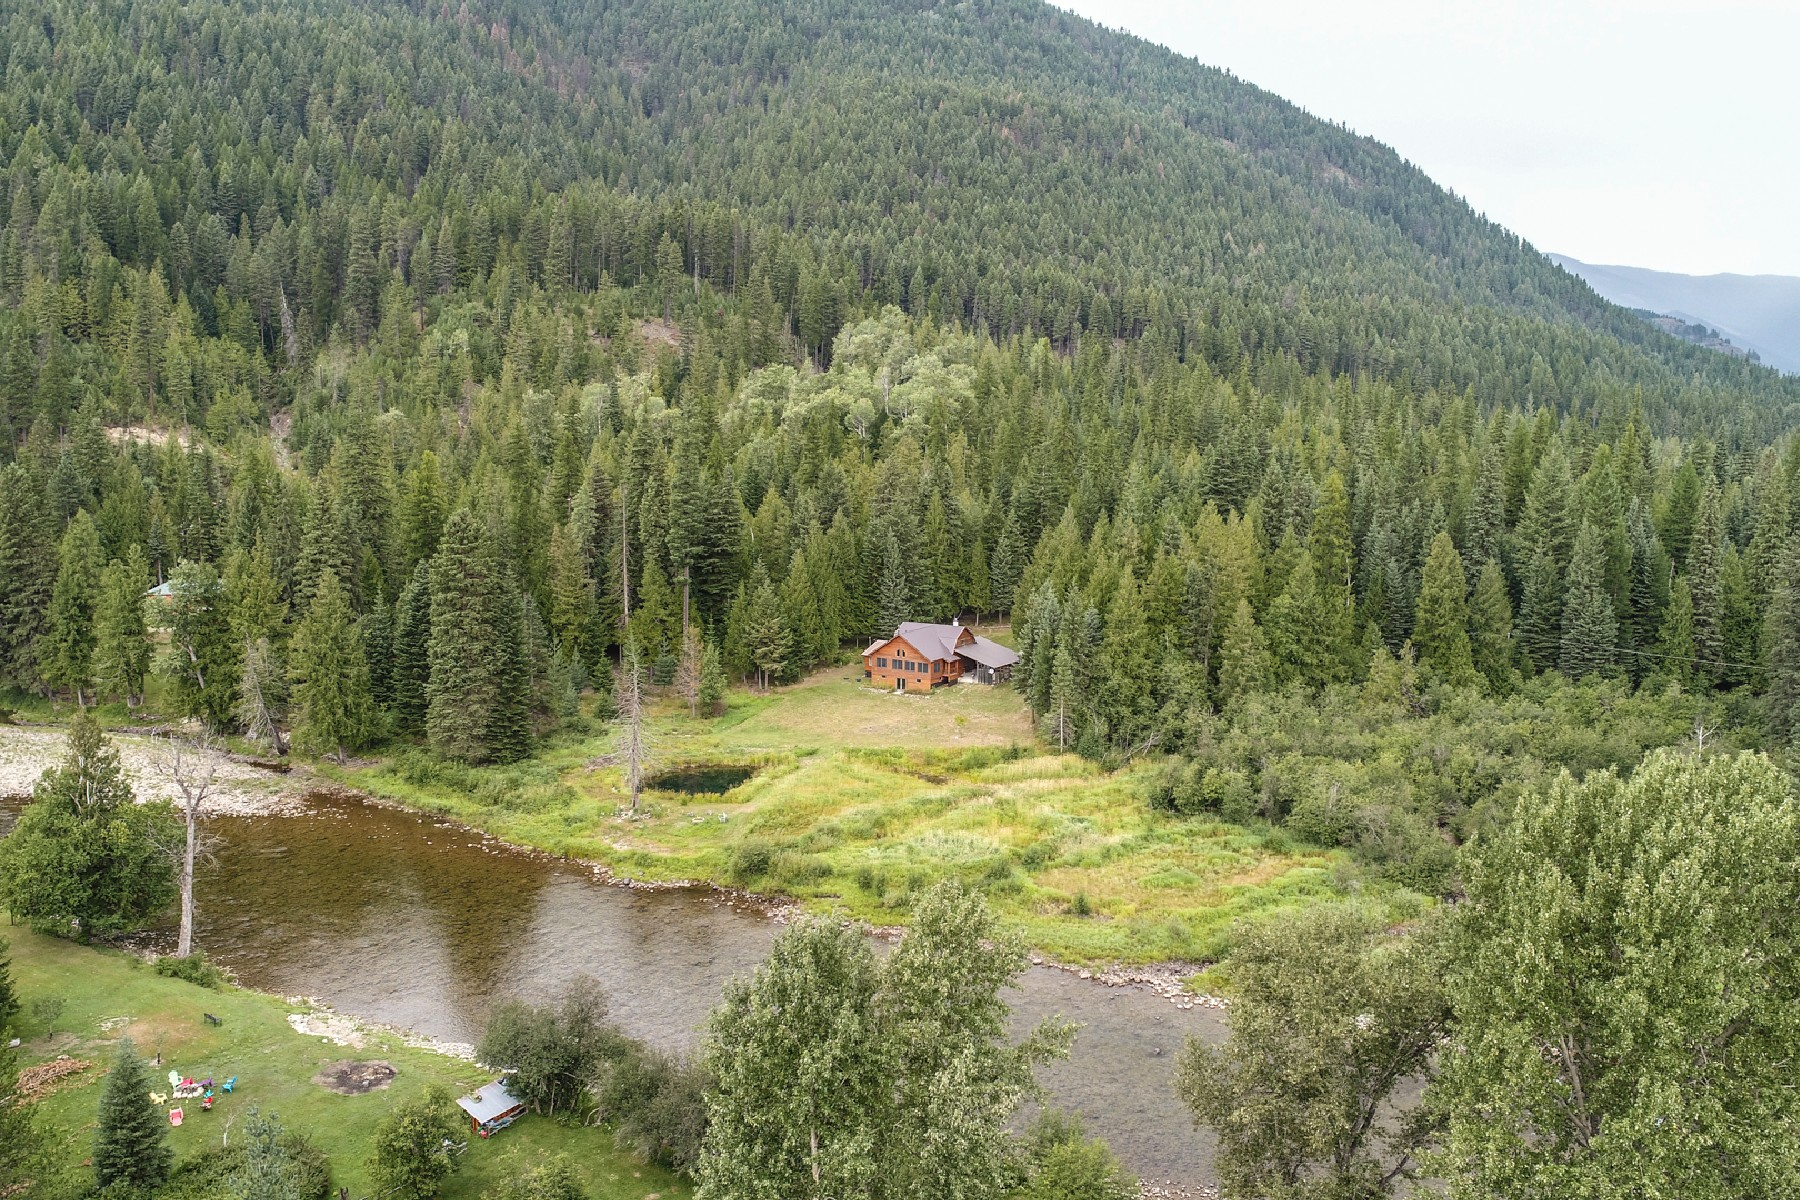 Single Family Homes for Active at Log Home on the River 398 Amber Ln Bonners Ferry, Idaho 83805 United States